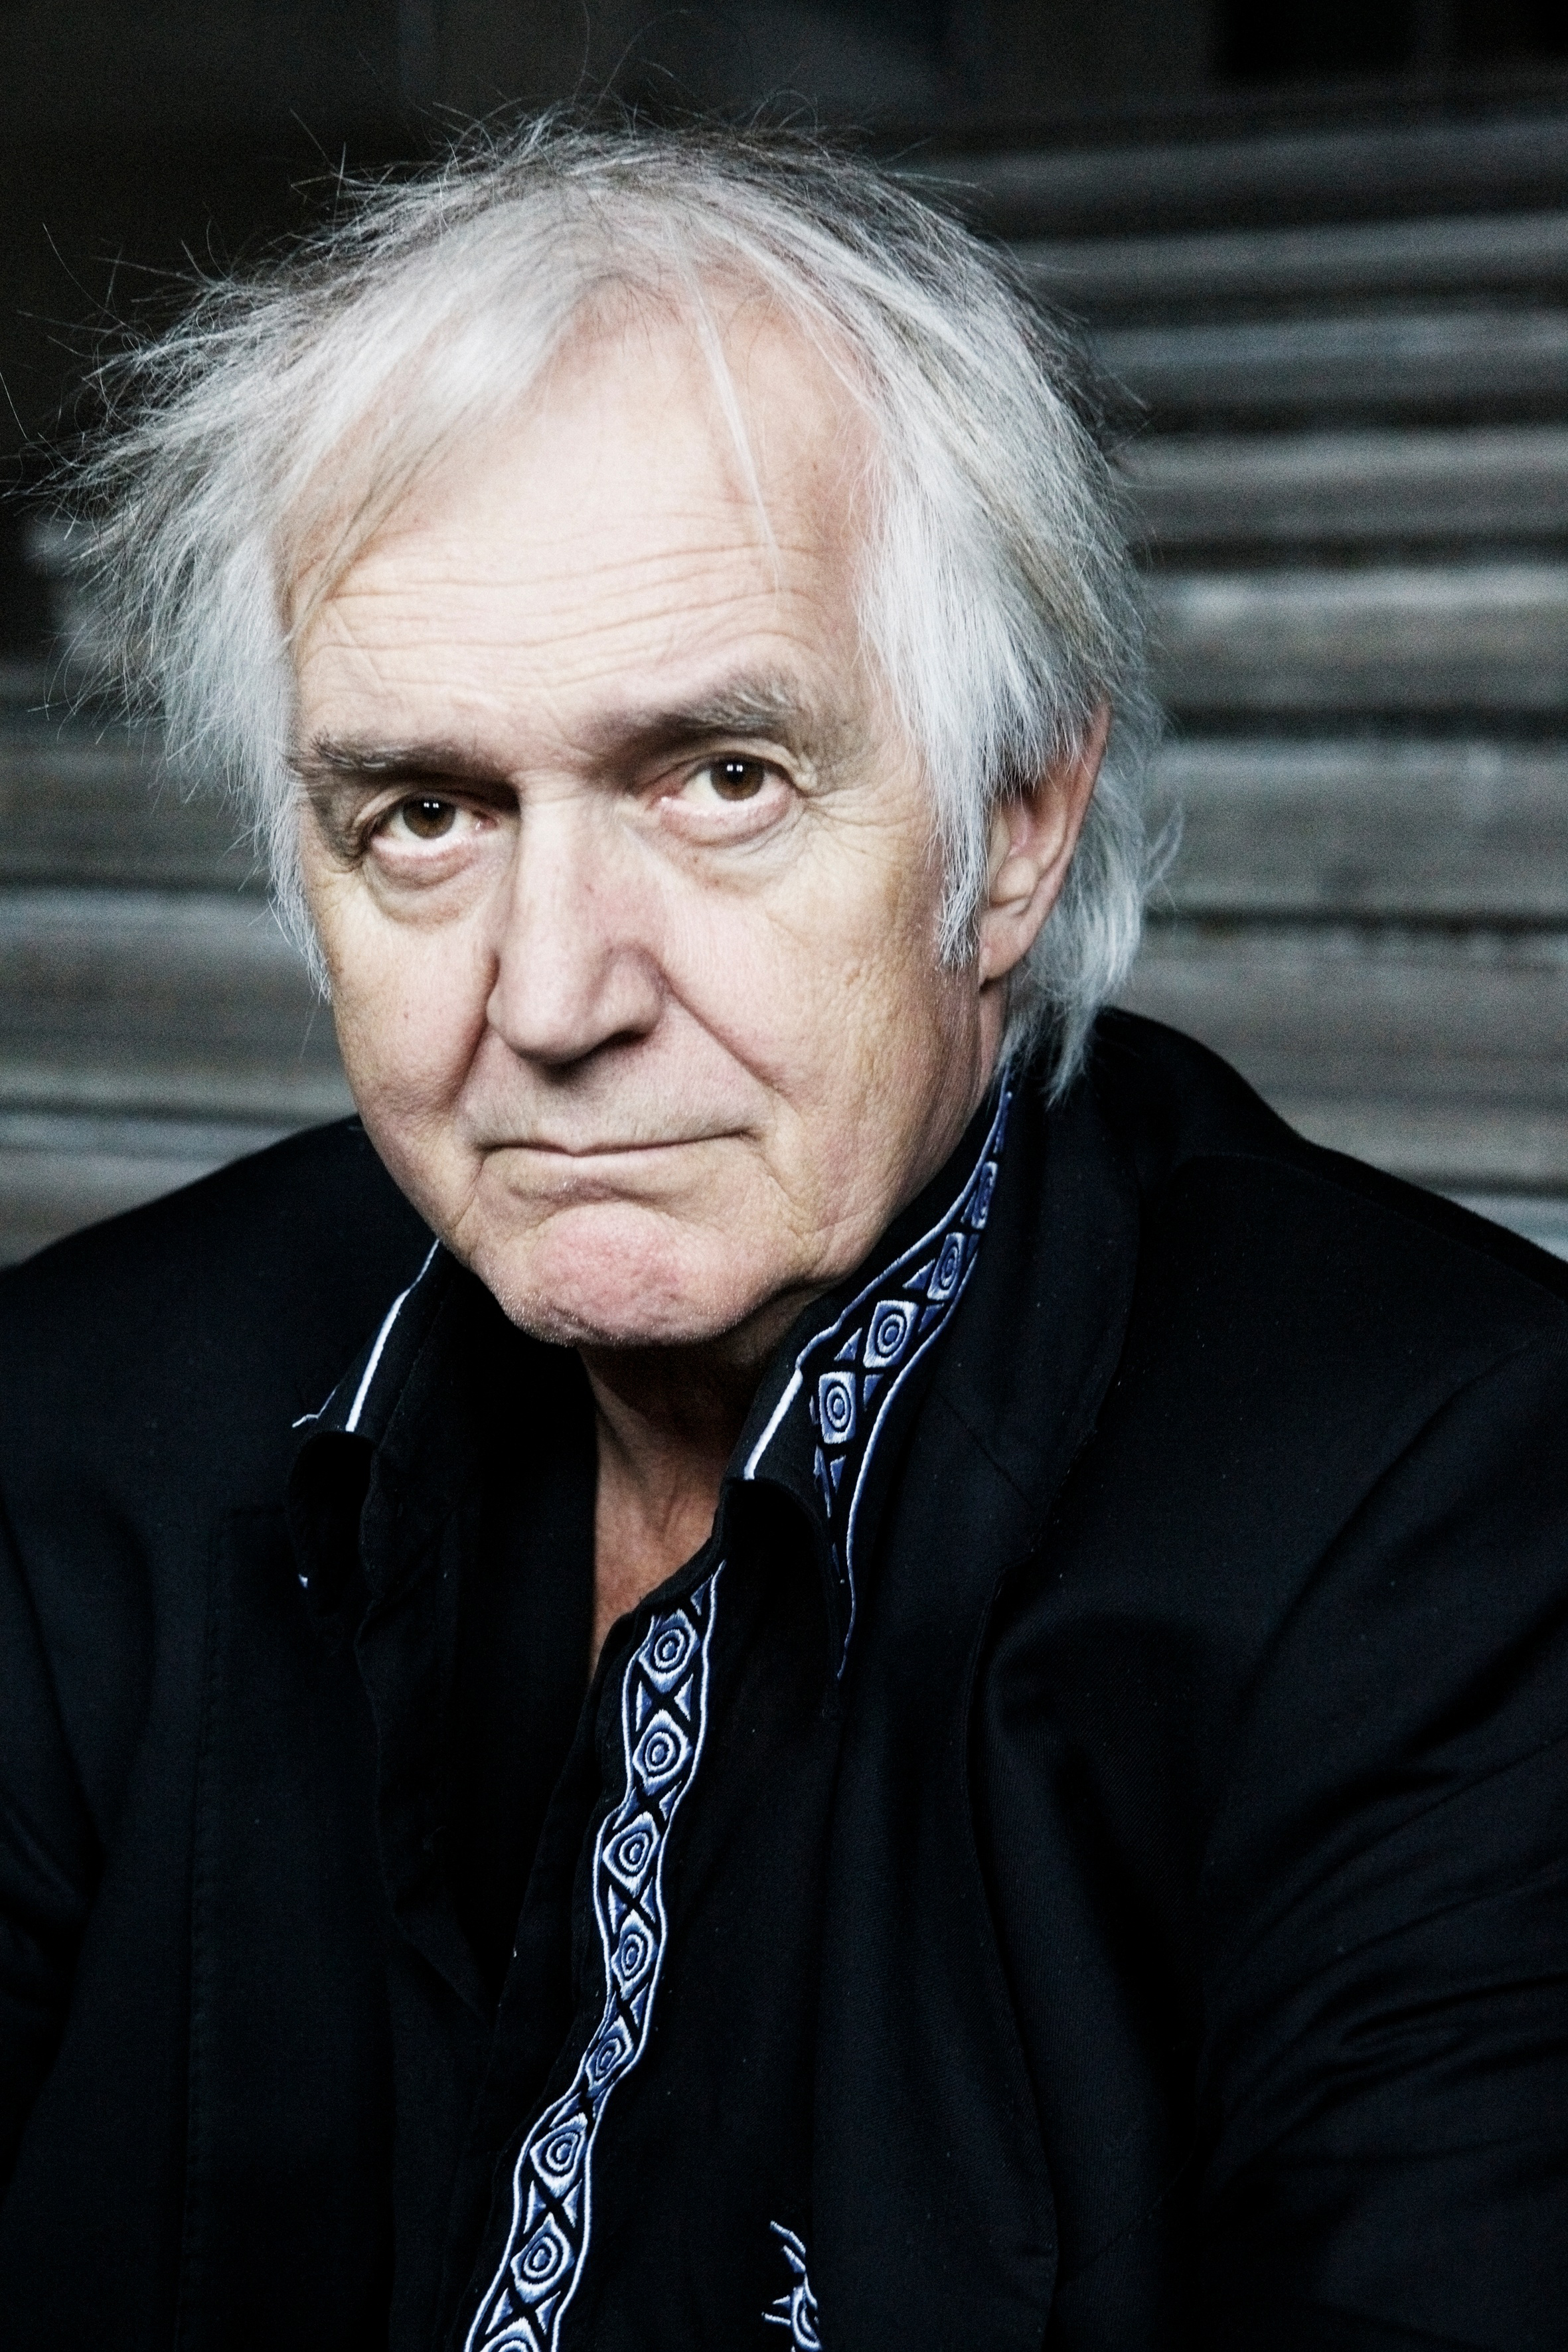 Mankell's debut